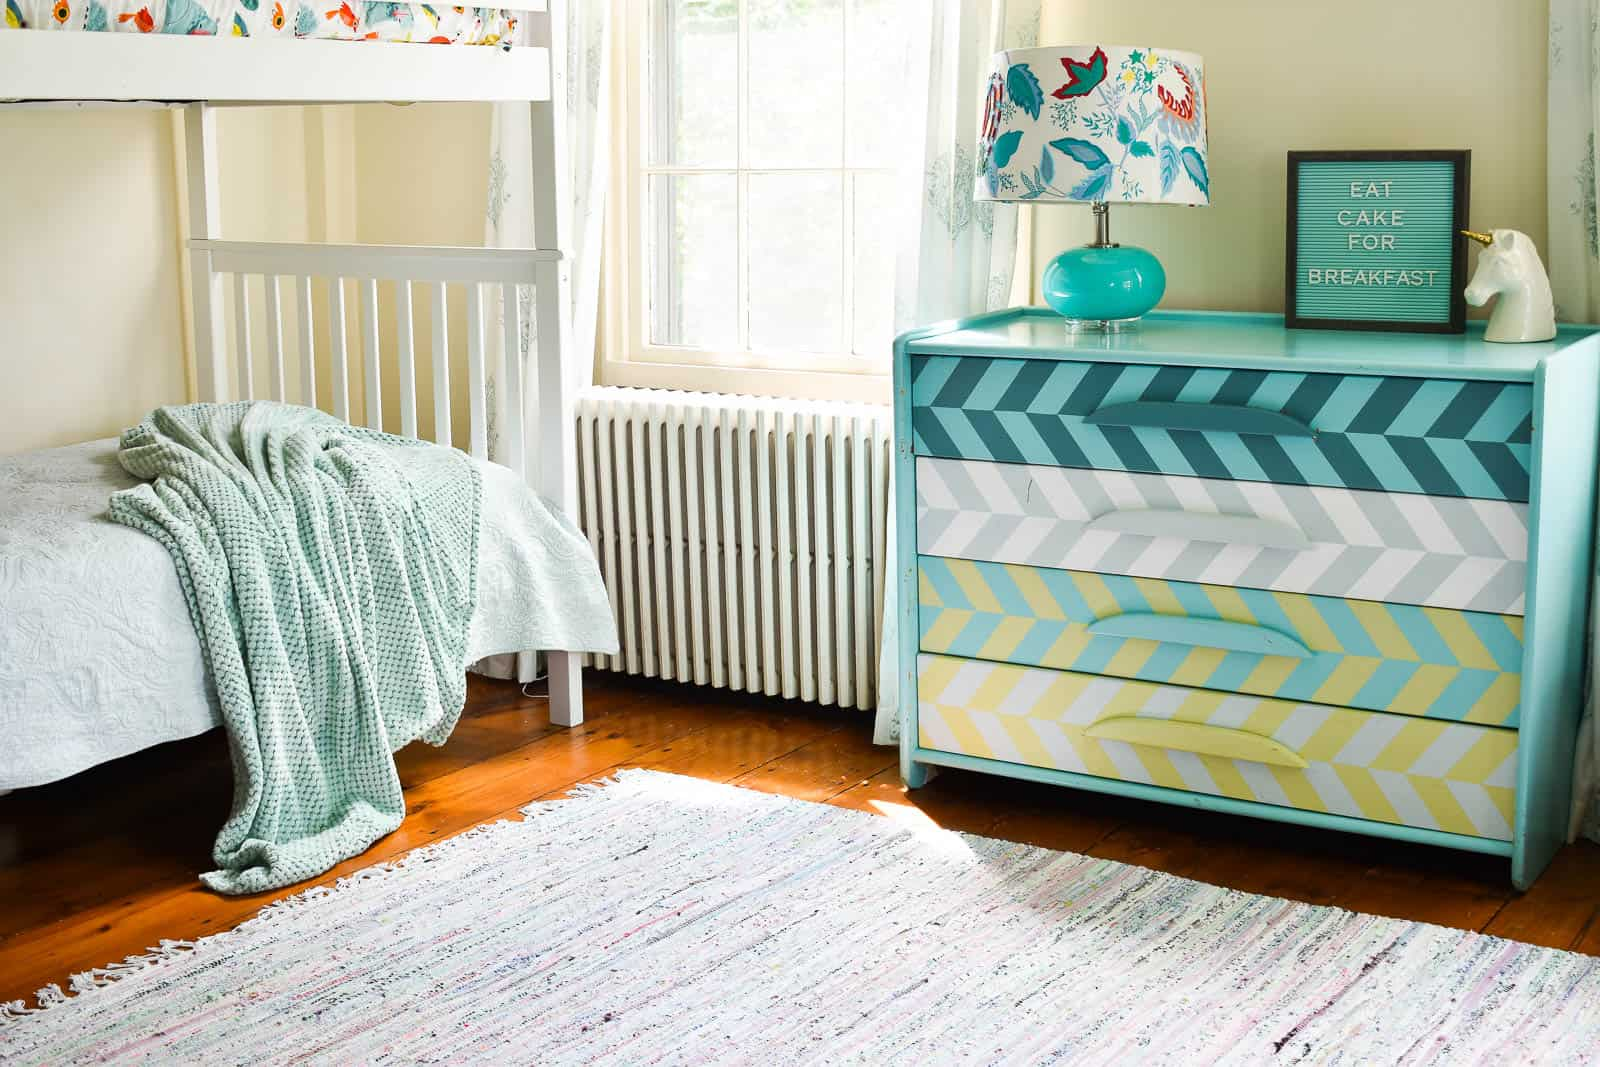 updated summer bedding with kohls home sale